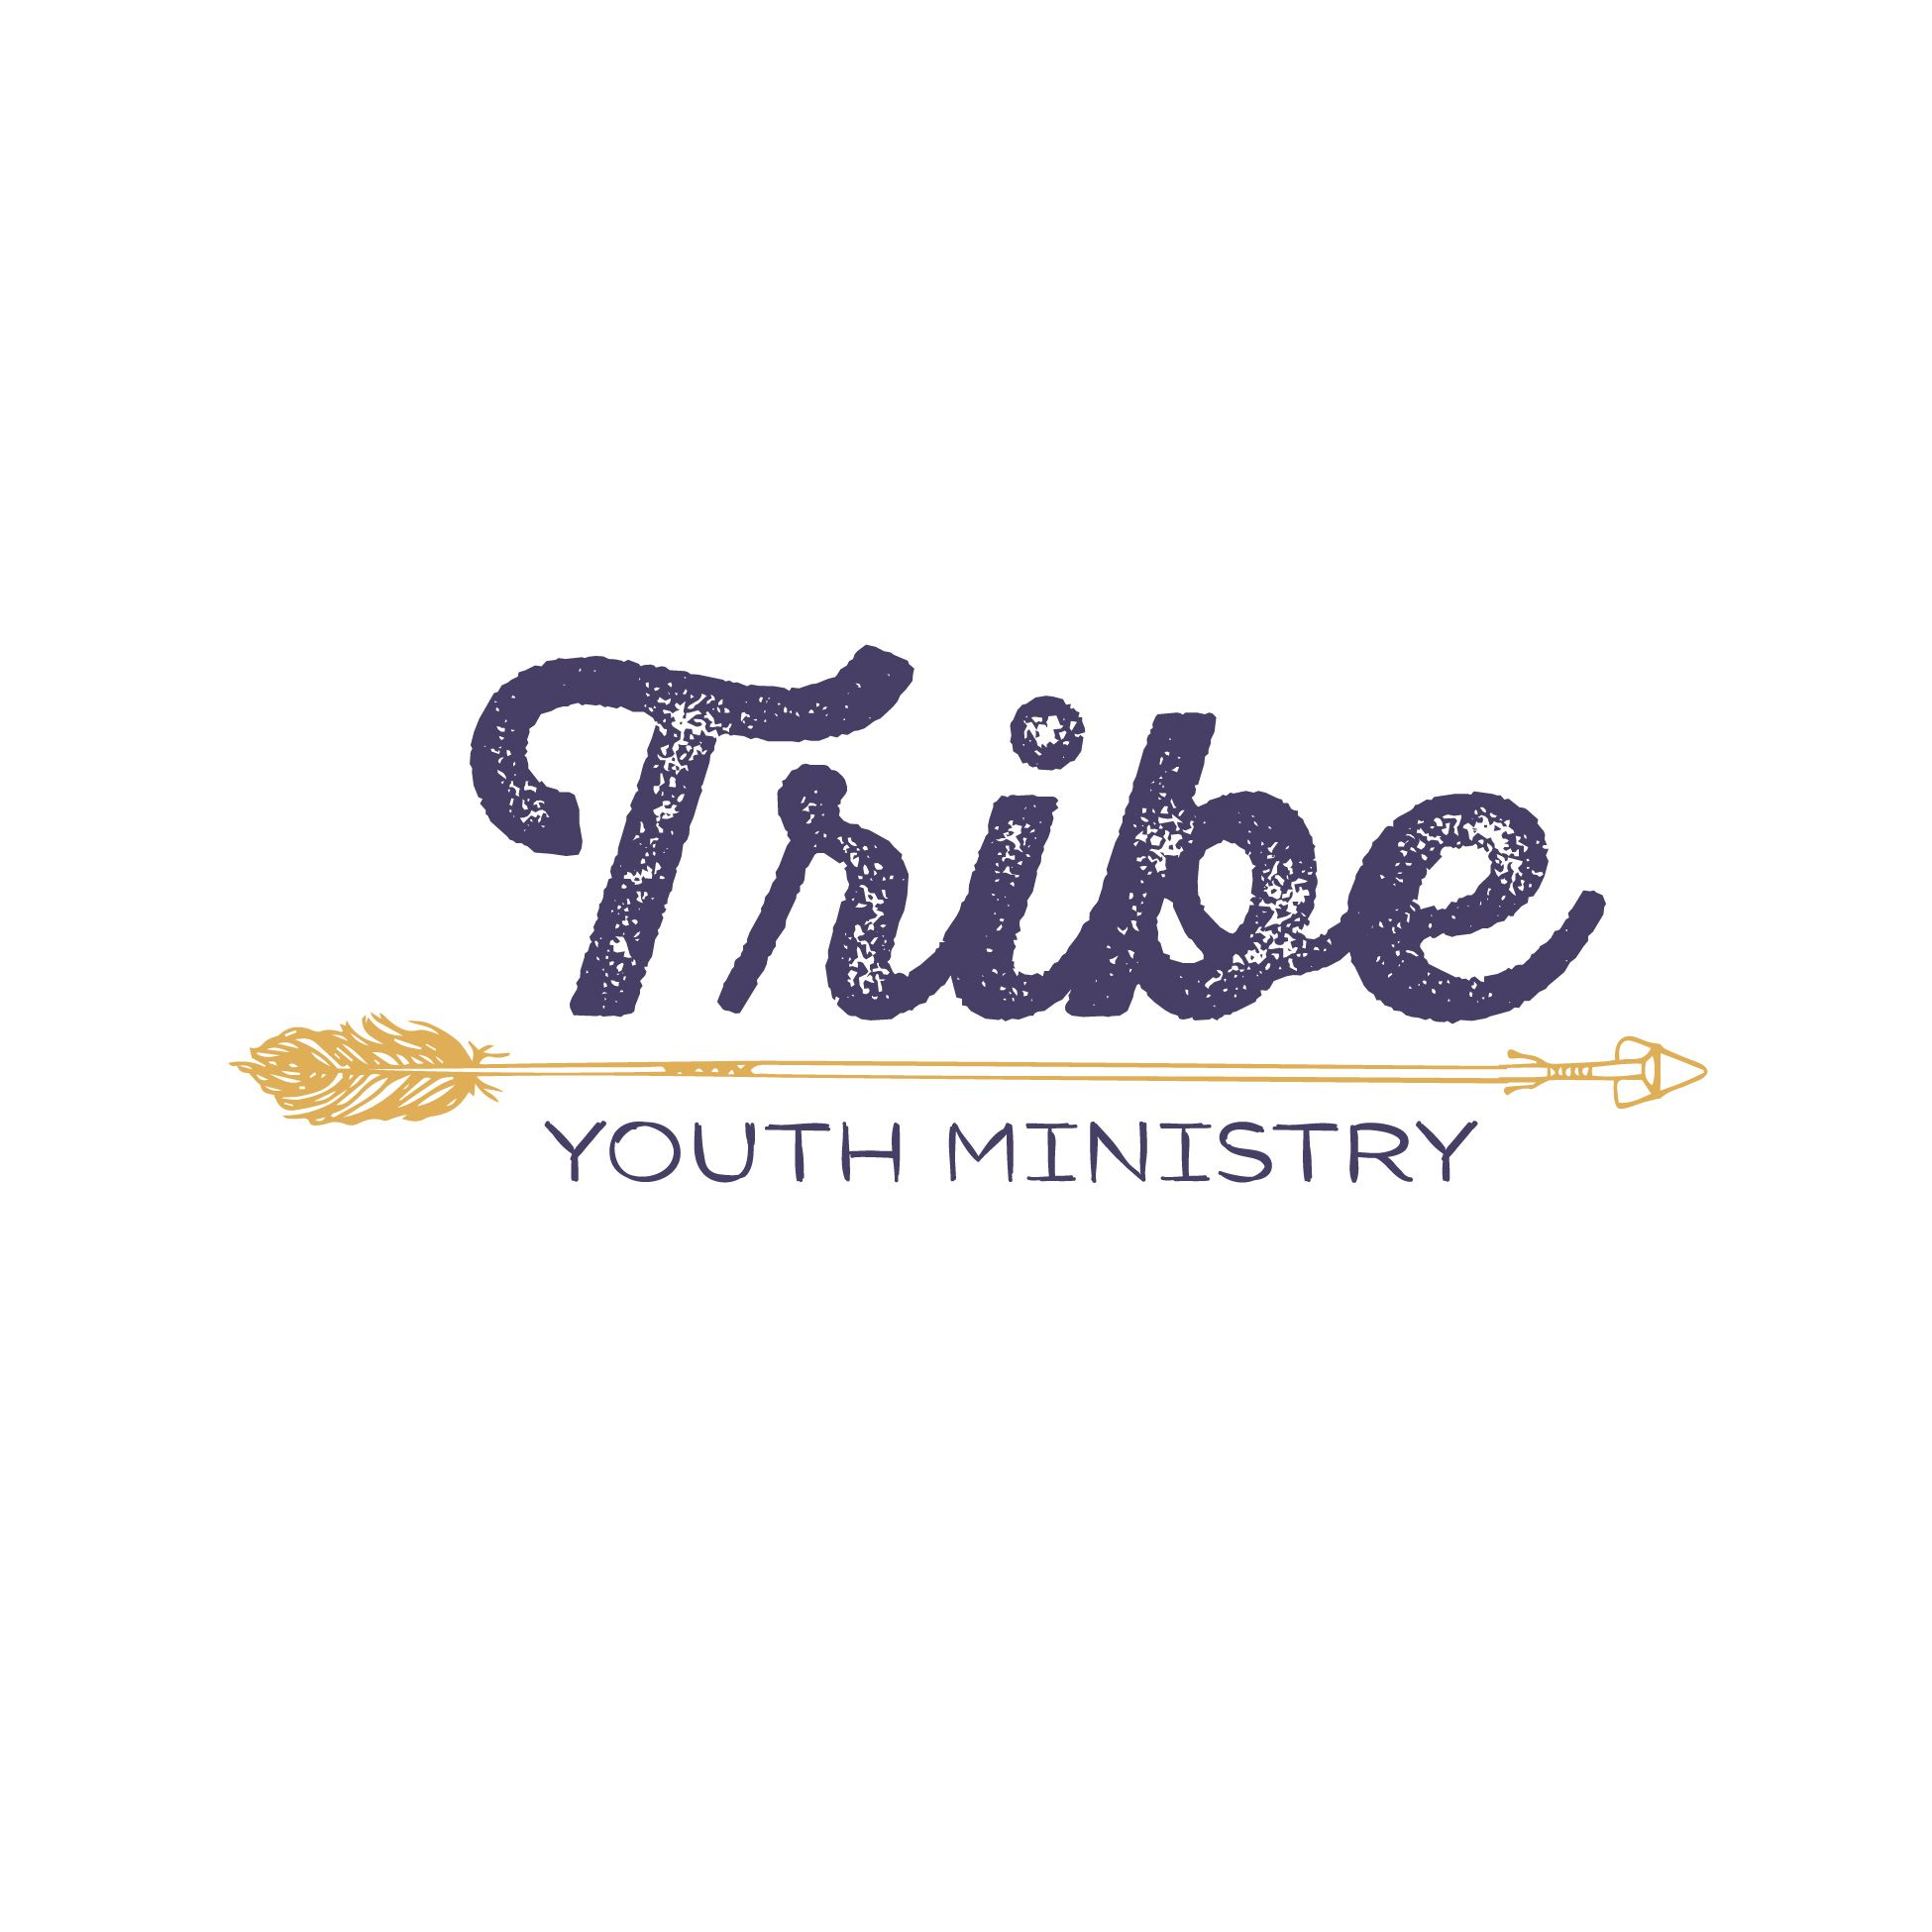 youth ministries All scripture is given by inspiration of god, and is profitable for doctrine, for reproof, for correction, for instruction in righteousness, that the man of god may be complete, thoroughly equipped for every good work.